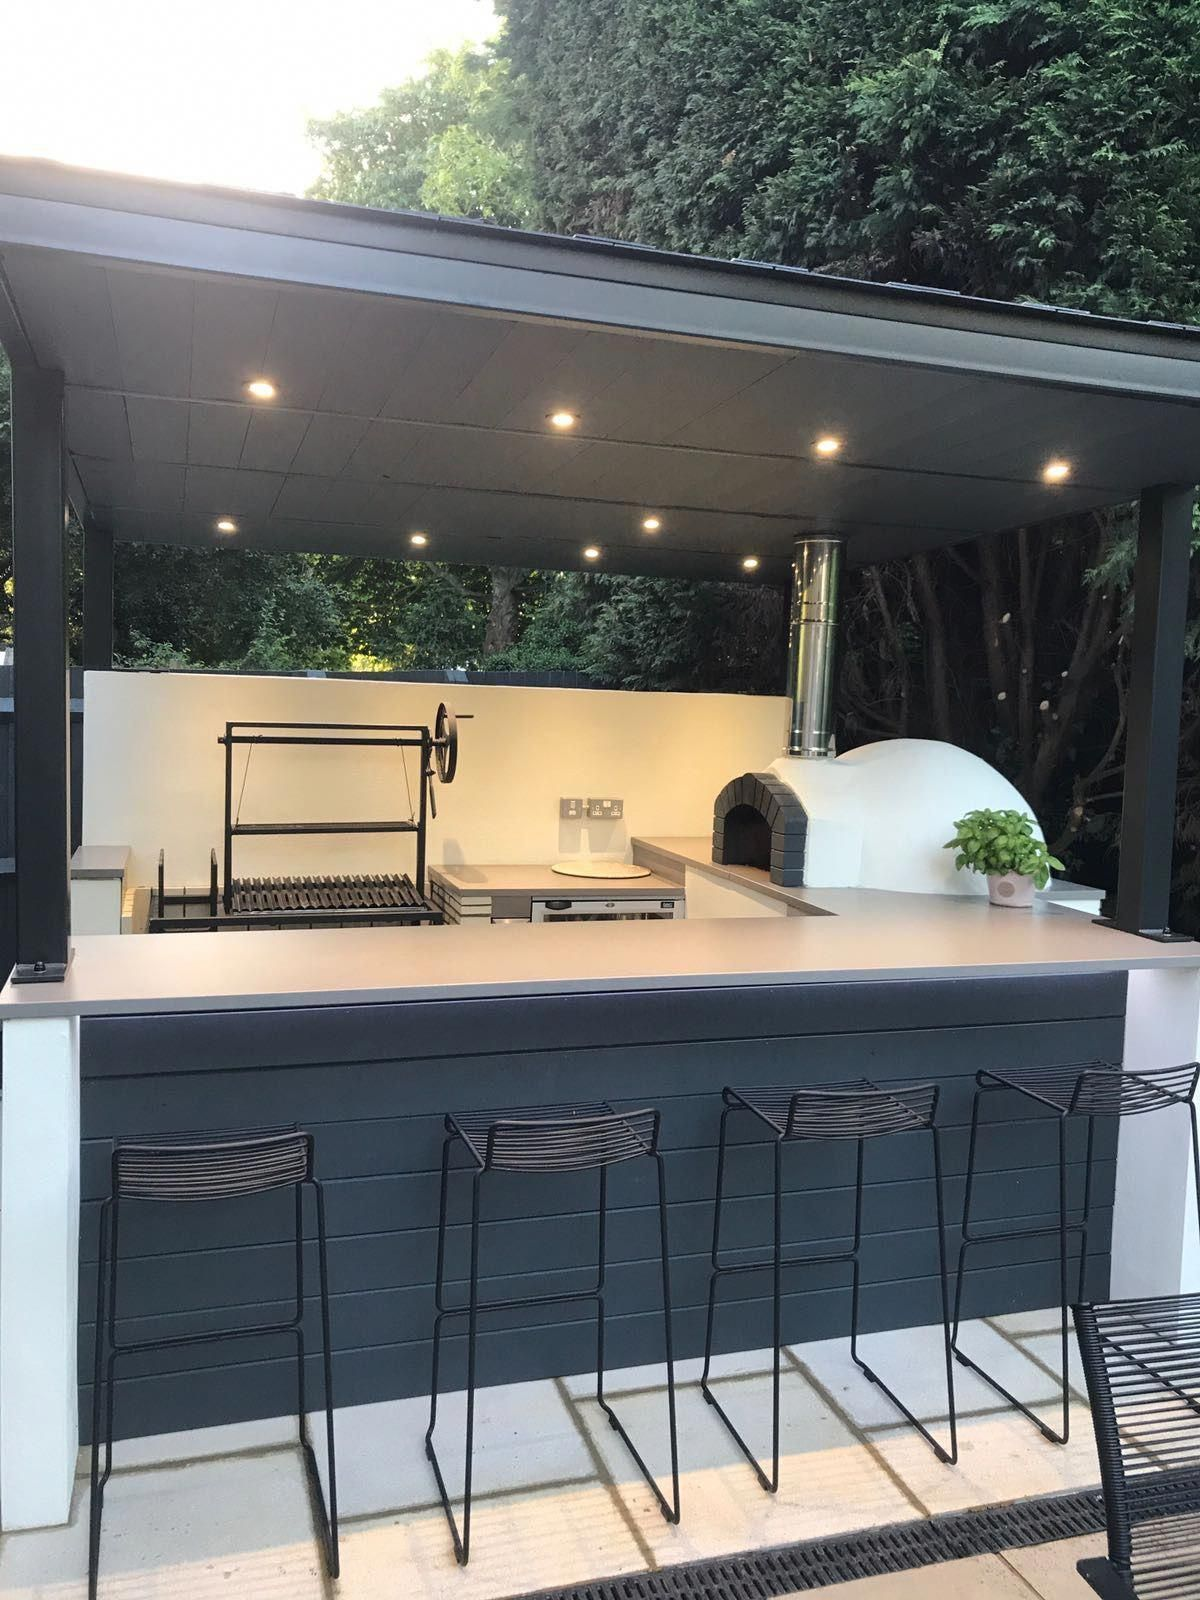 Outdoor Kitchen Bars You Are In The Right Place About Small Outdoor Kitchen Bar In 2020 Small Outdoor Kitchens Pizza Oven Outdoor Pizza Oven Outdoor Kitchen